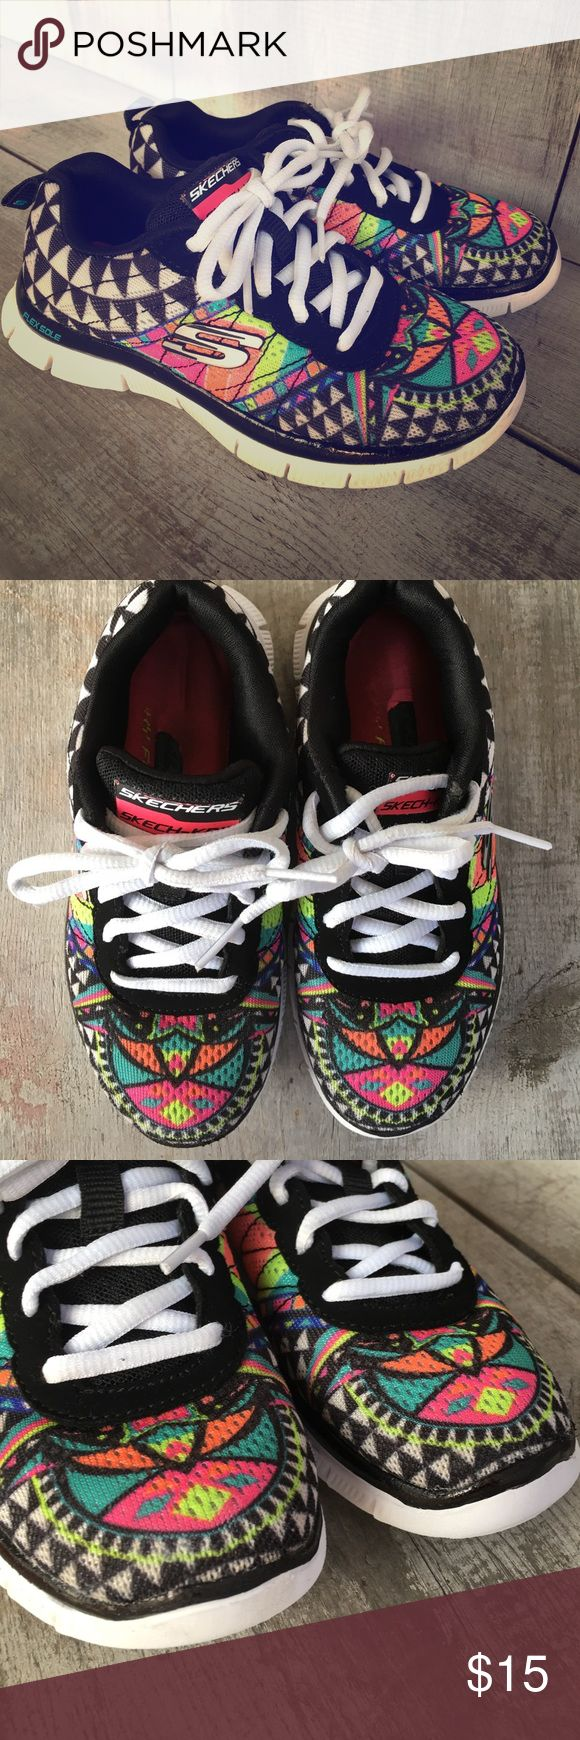 Skechers Youth Girls Aztec Tribal Sneakers Adorable, fun, bright little athletic shoes by Skechers. Size 12 youth (little toddler girls). Cute tribal pattern. Great condition, minimal signs of wear. No holes/odors/stains. Laces intact and no fraying. Lightweight mesh type knit upper with memory foam insoles, very comfortable! Flexible and great for school, sports or play. Exact shoes pictured. Smoke/pet free. Skechers Shoes Sneakers